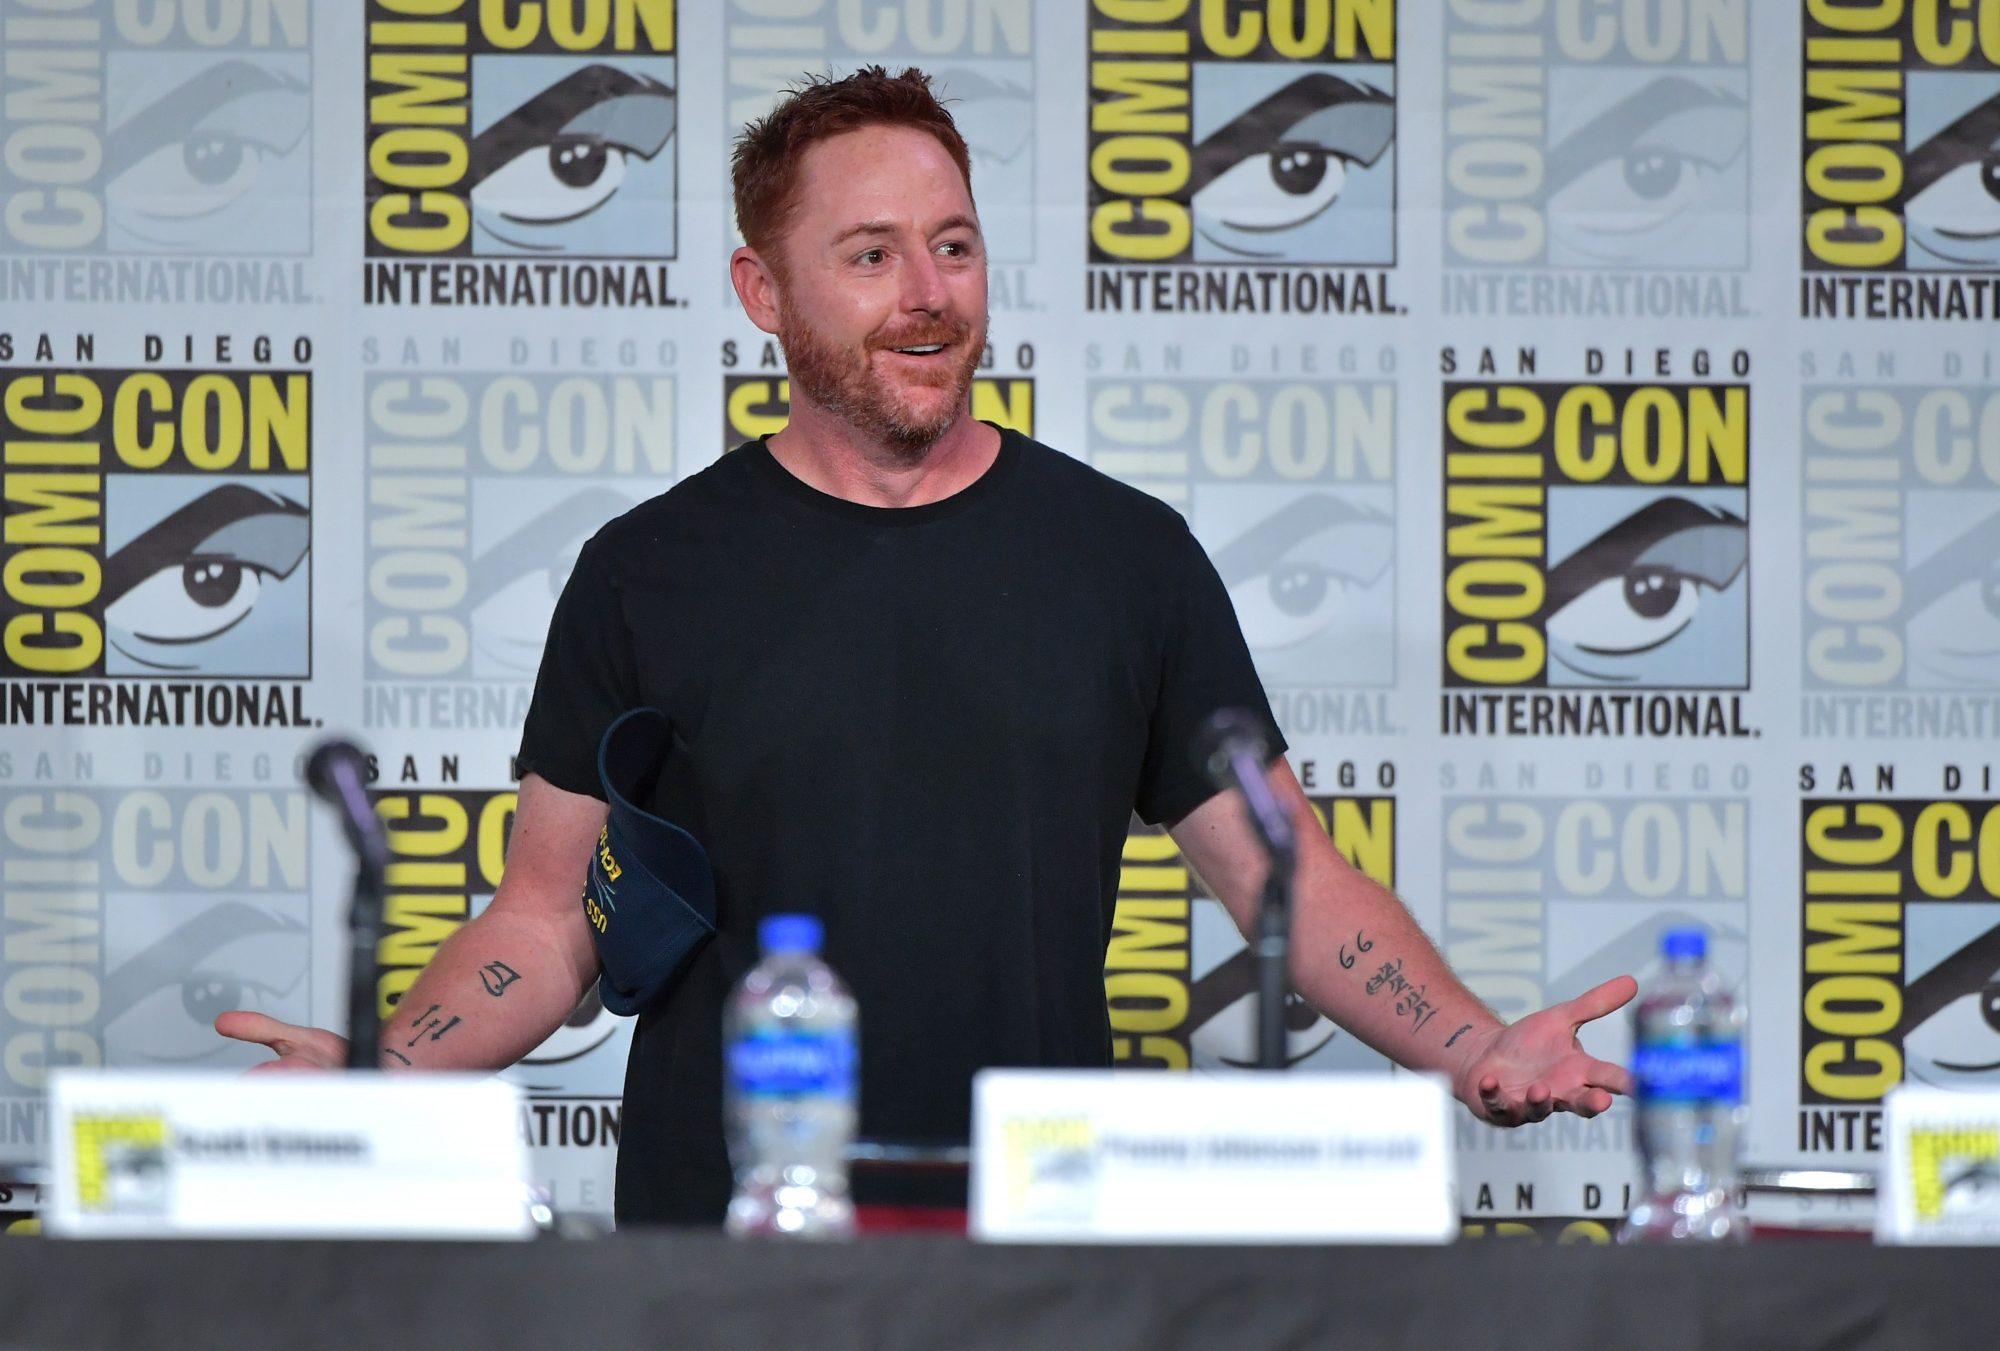 """SAN DIEGO, CALIFORNIA - JULY 20: Scott Grimes speaks at """"The Orville"""" Panel during 2019 Comic-Con International at San Diego Convention Center on July 20, 2019 in San Diego, California. (Photo by Amy Sussman/Getty Images)"""